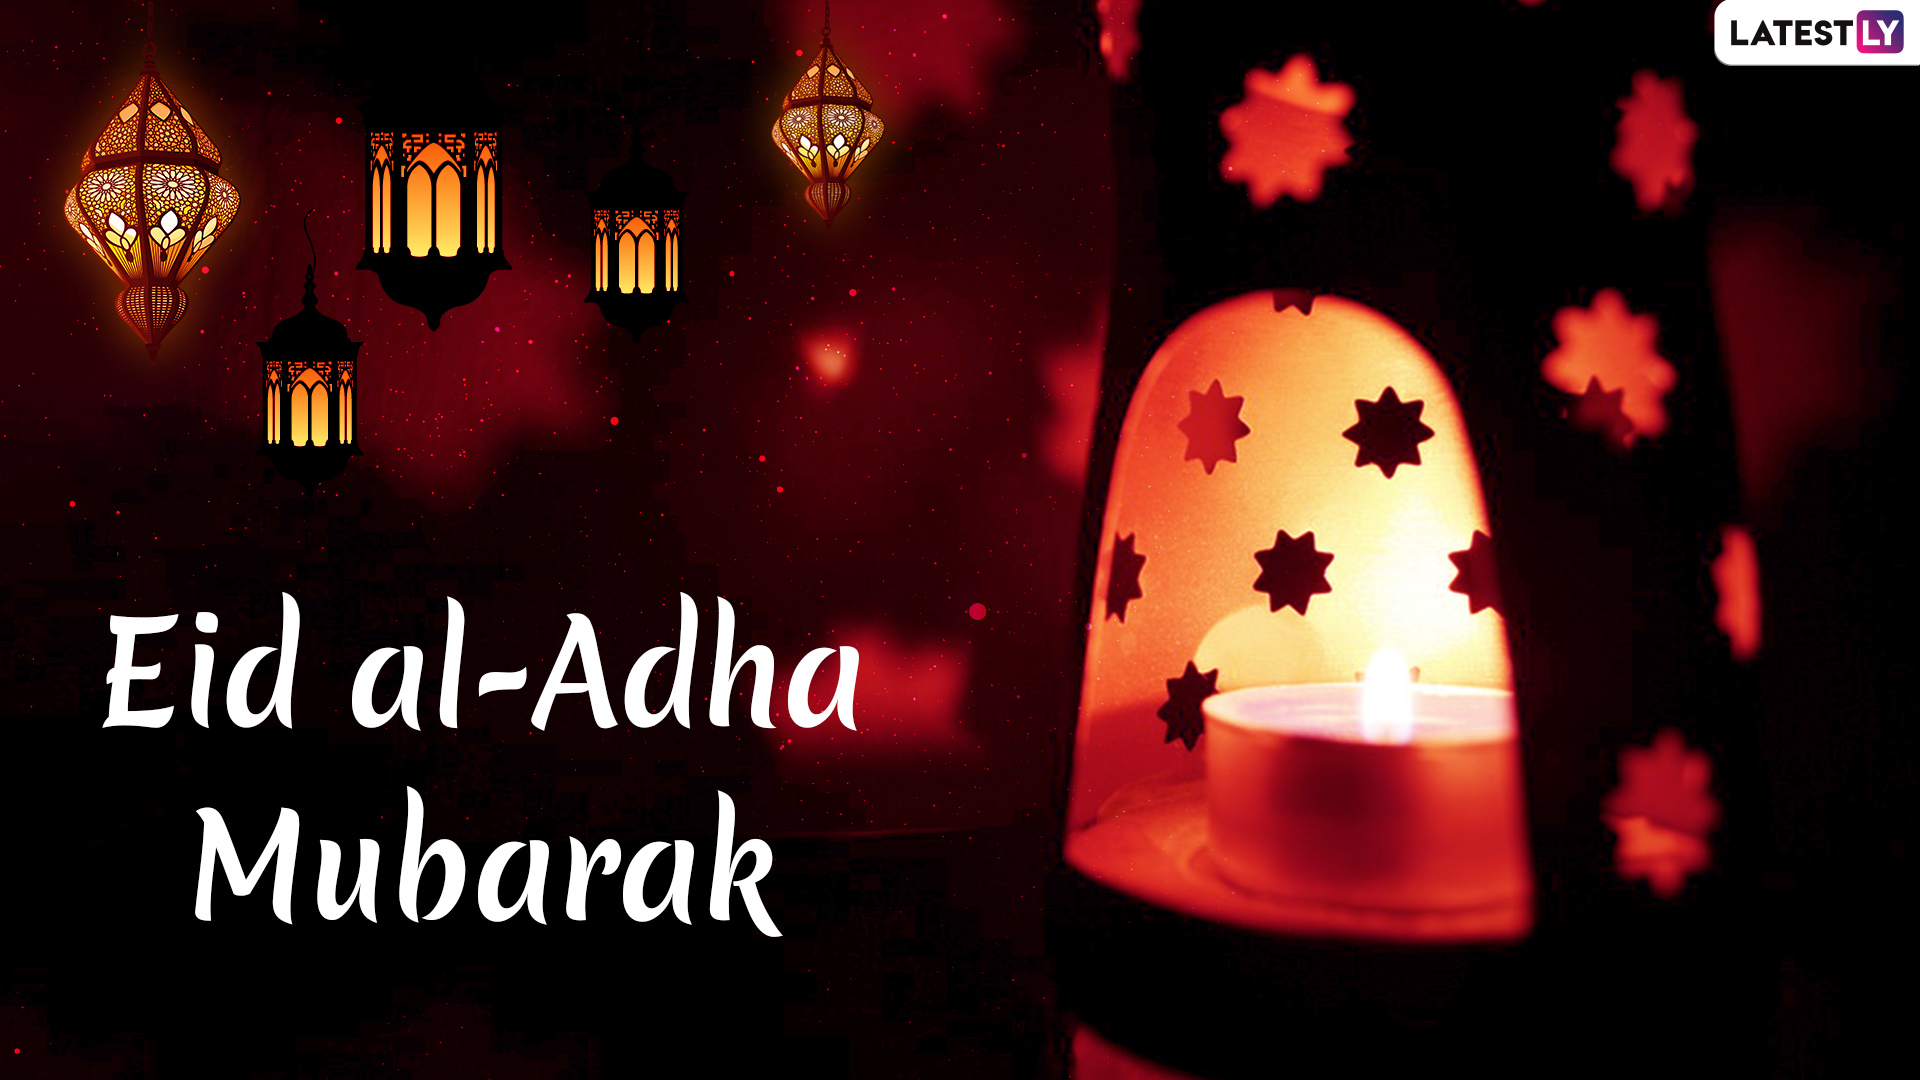 Eid al-Adha Mubarak Images and HD Wallpapers For Free Download